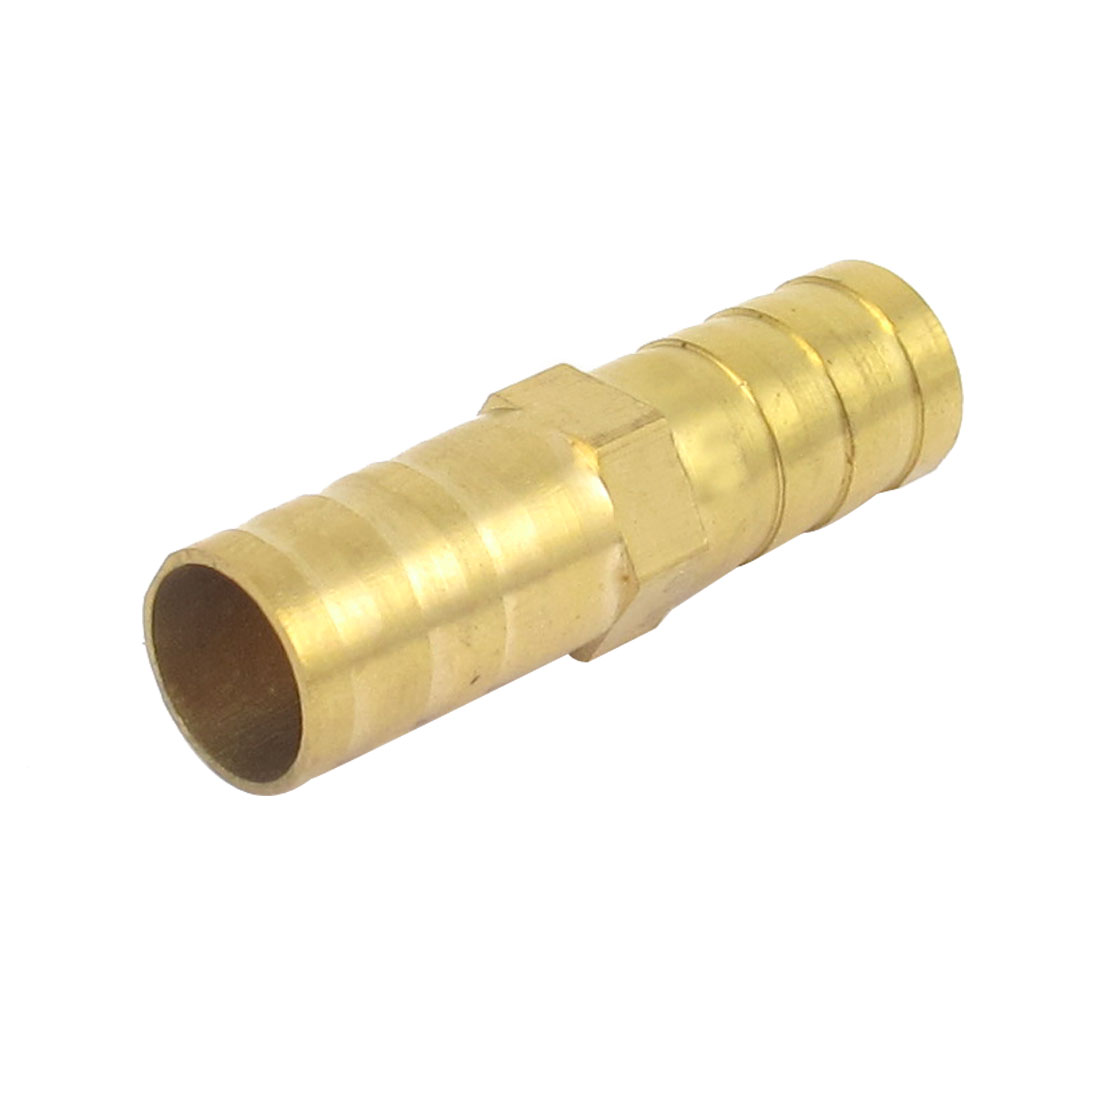 10mm Air Pipe Gas Hose Straight Barb Coupler Fitting Connector Adapter Splicer